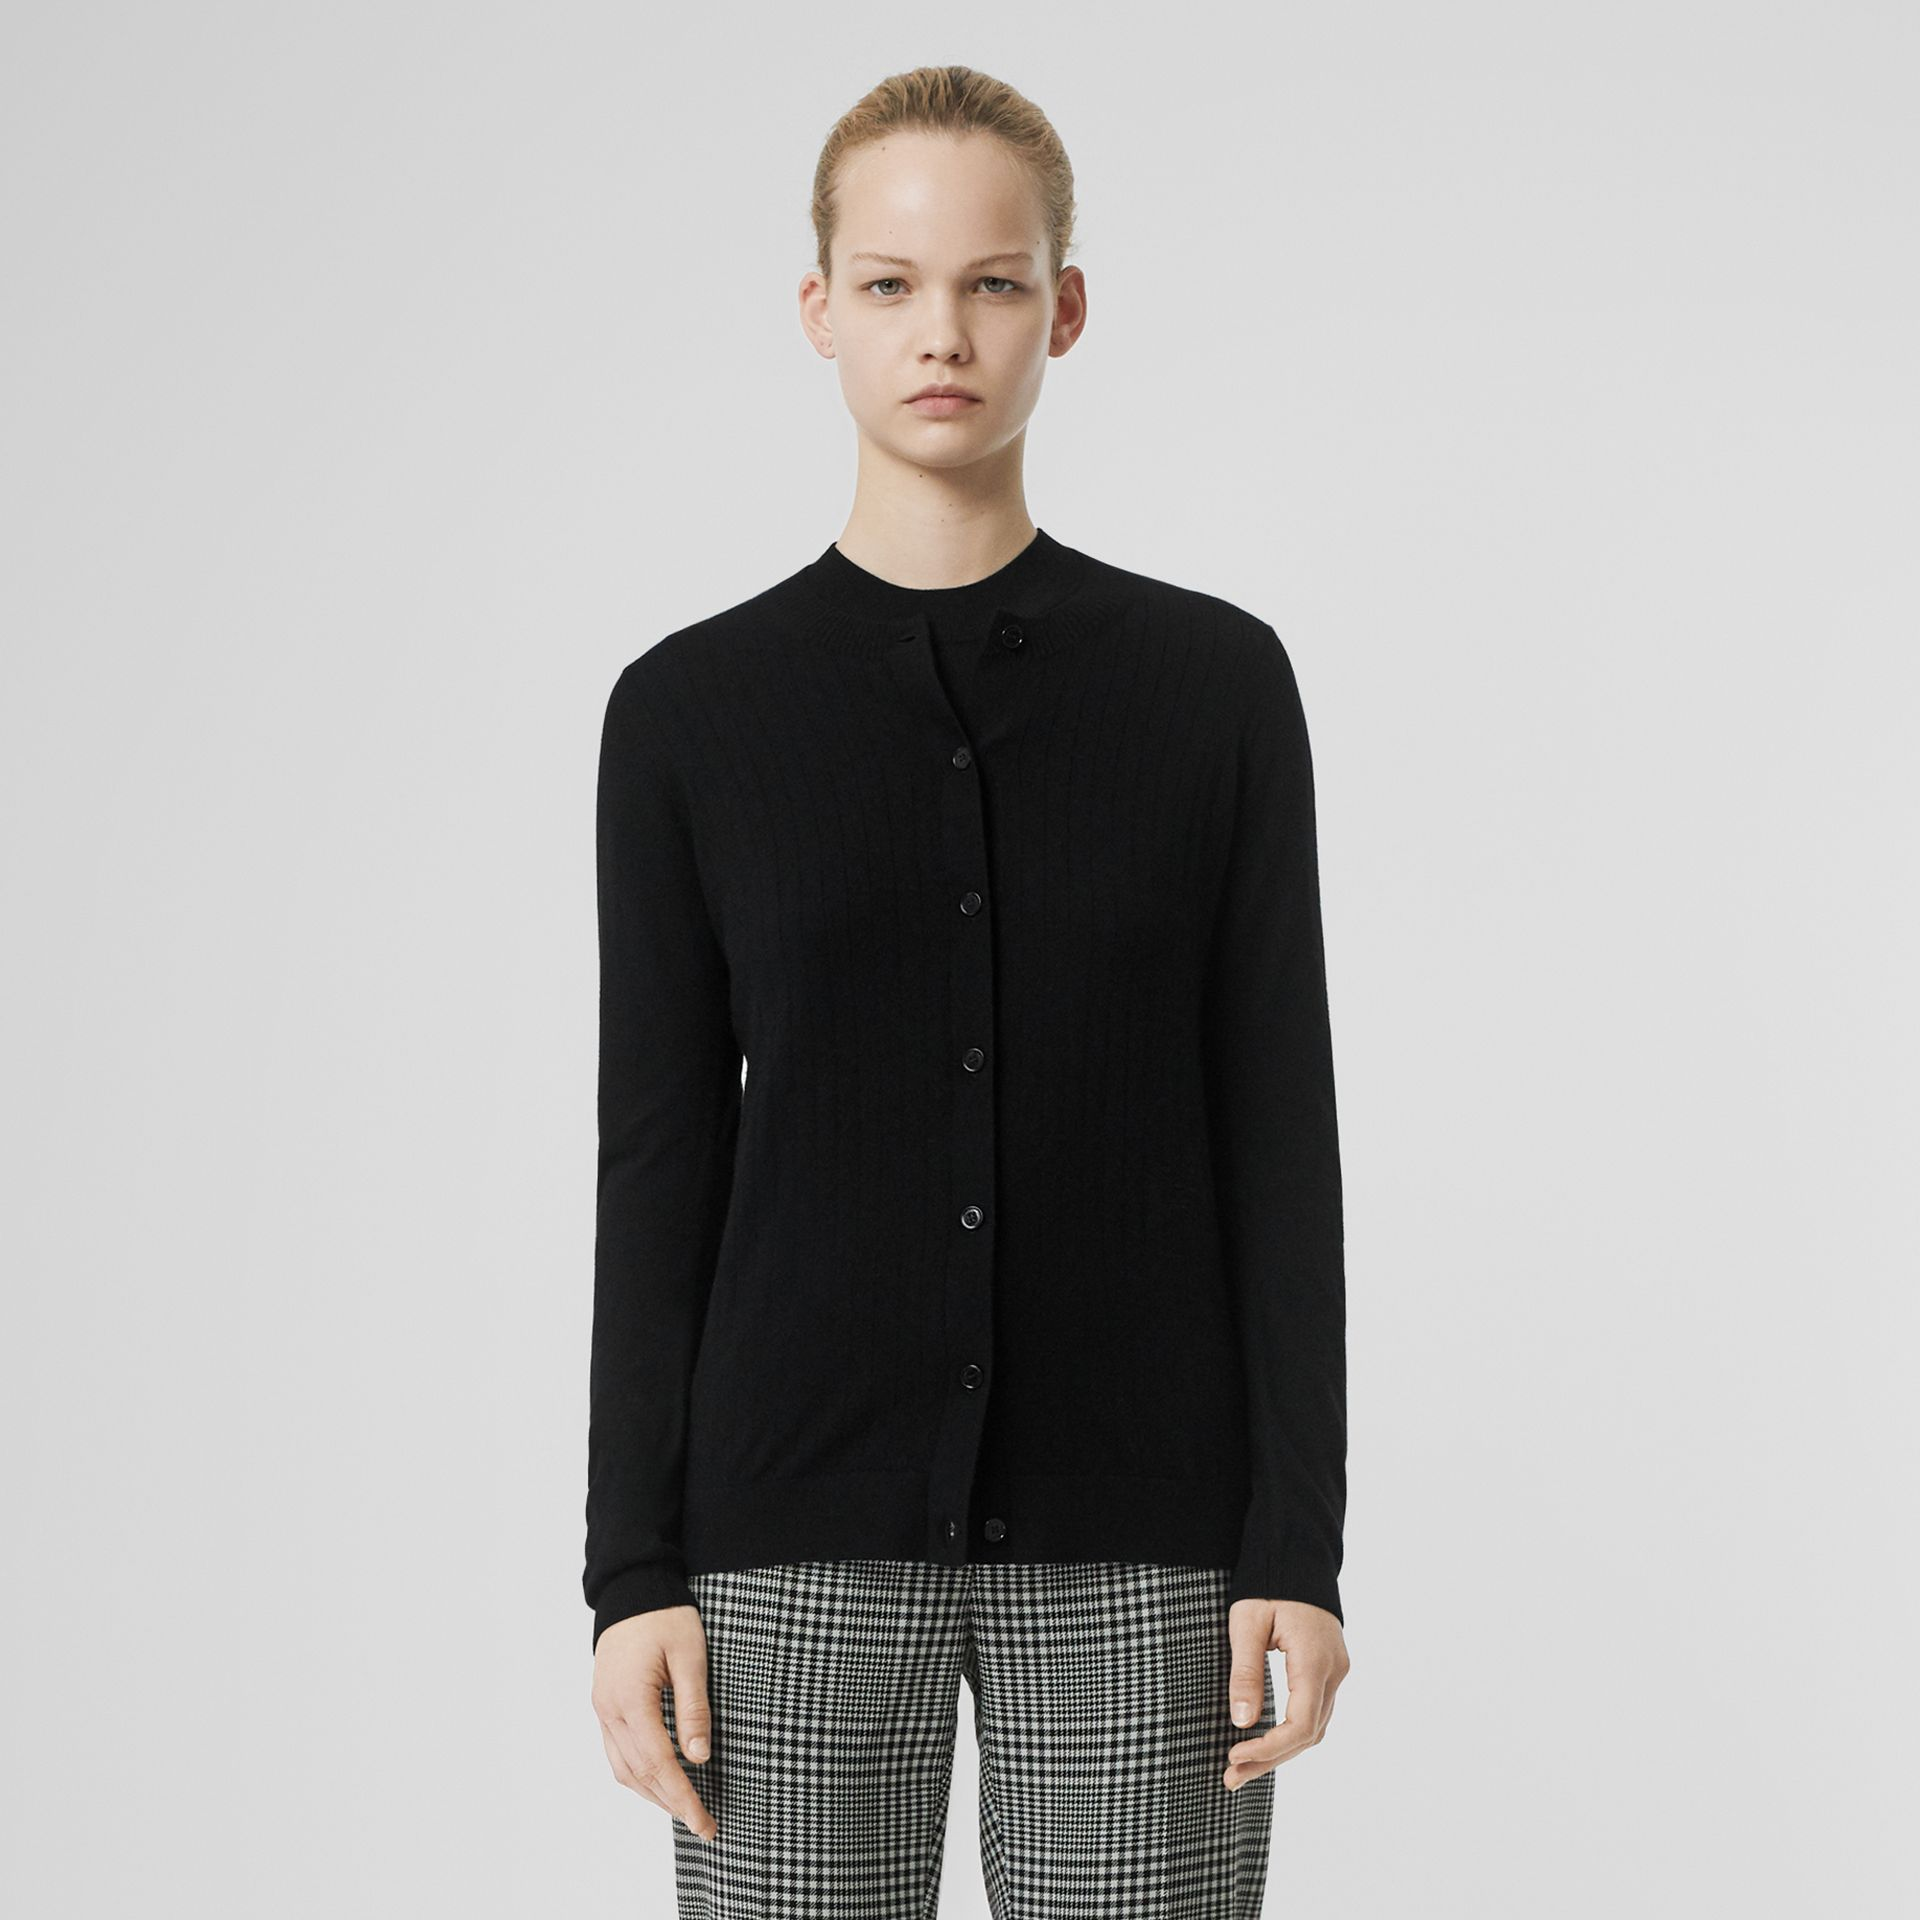 Rib Knit Cashmere Cardigan in Black - Women | Burberry Australia - gallery image 6